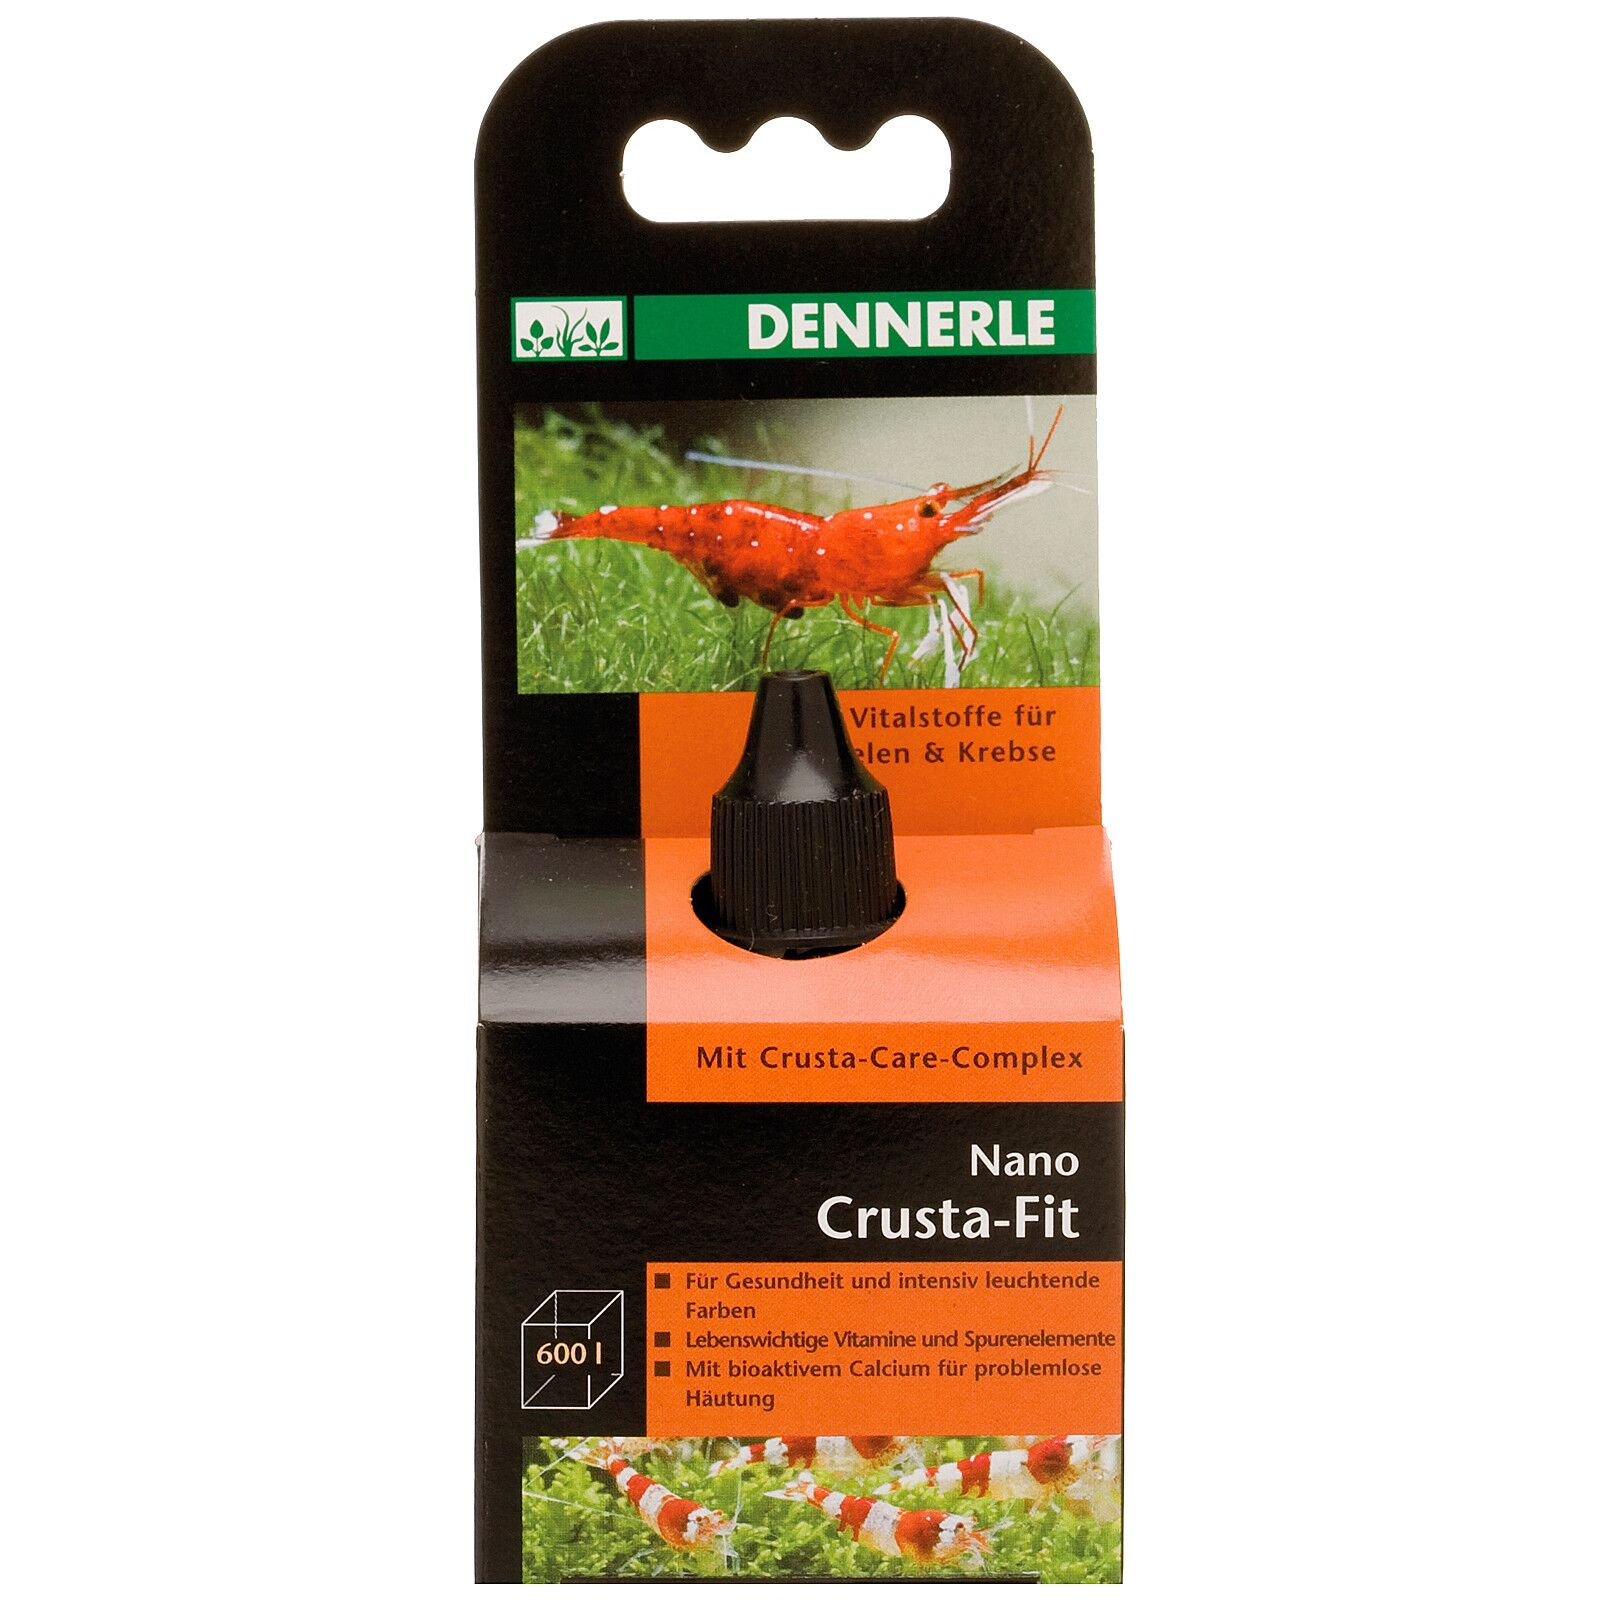 Dennerle - Nano Crusta-Fit - 15 ml